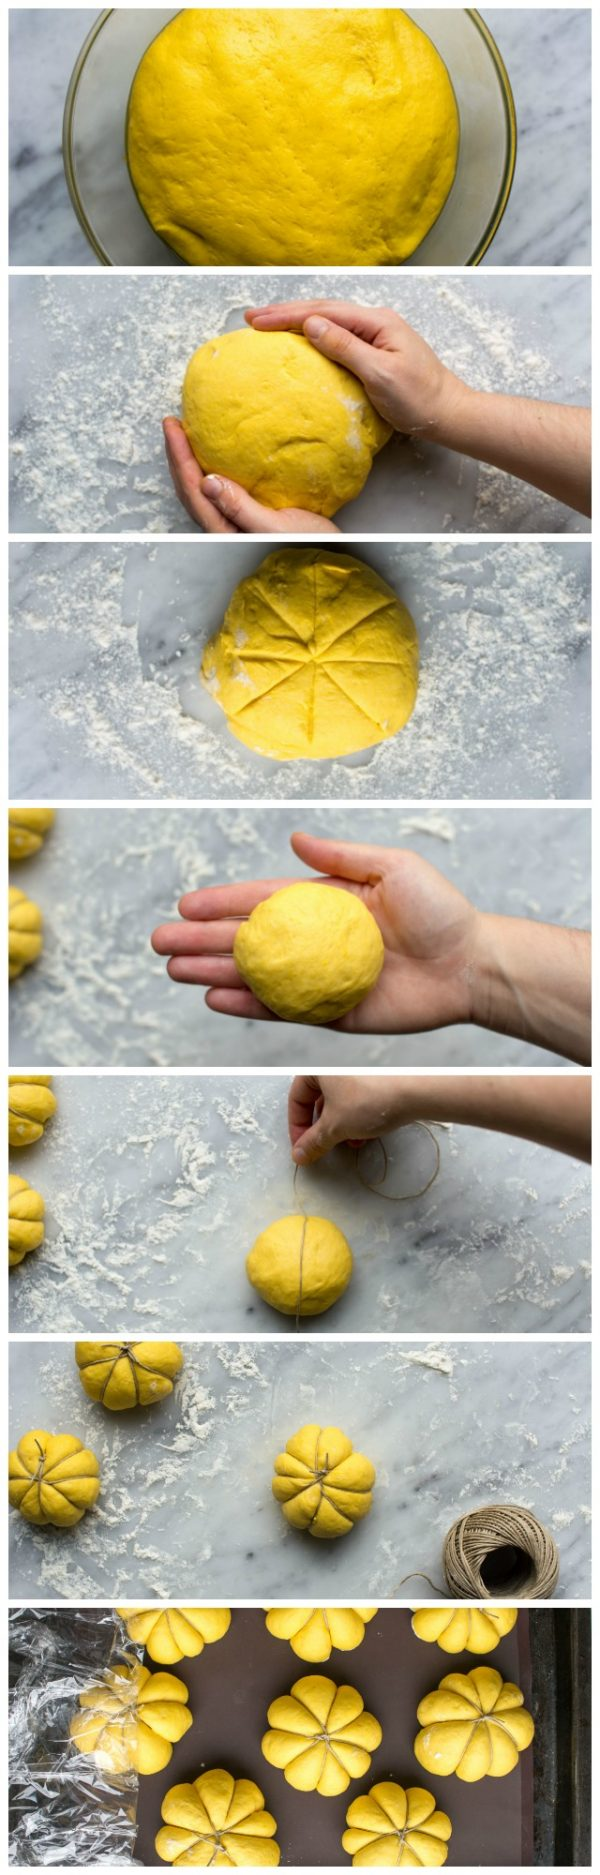 Once doubled, punch the excess air out of the dough and divide into 8 equal pieces. Roll each one into a ball and pinch the bottom together. Take a long piece of string and find the halfway point. Place the half way point on top of the ball and flip the whole thing over. Pull the two pieces of string together and cross them over to create a cross on the bottom of the ball. Flip it over again and do the same thing until the ball is divided into 8 equal pieces. Tie the string at the top and cut off any excess. See the pictures below for the process. Cover the 8 rolls with cling film and let rise again for 30 minutes. The dough will puff out around the string and make pumpkin shapes.